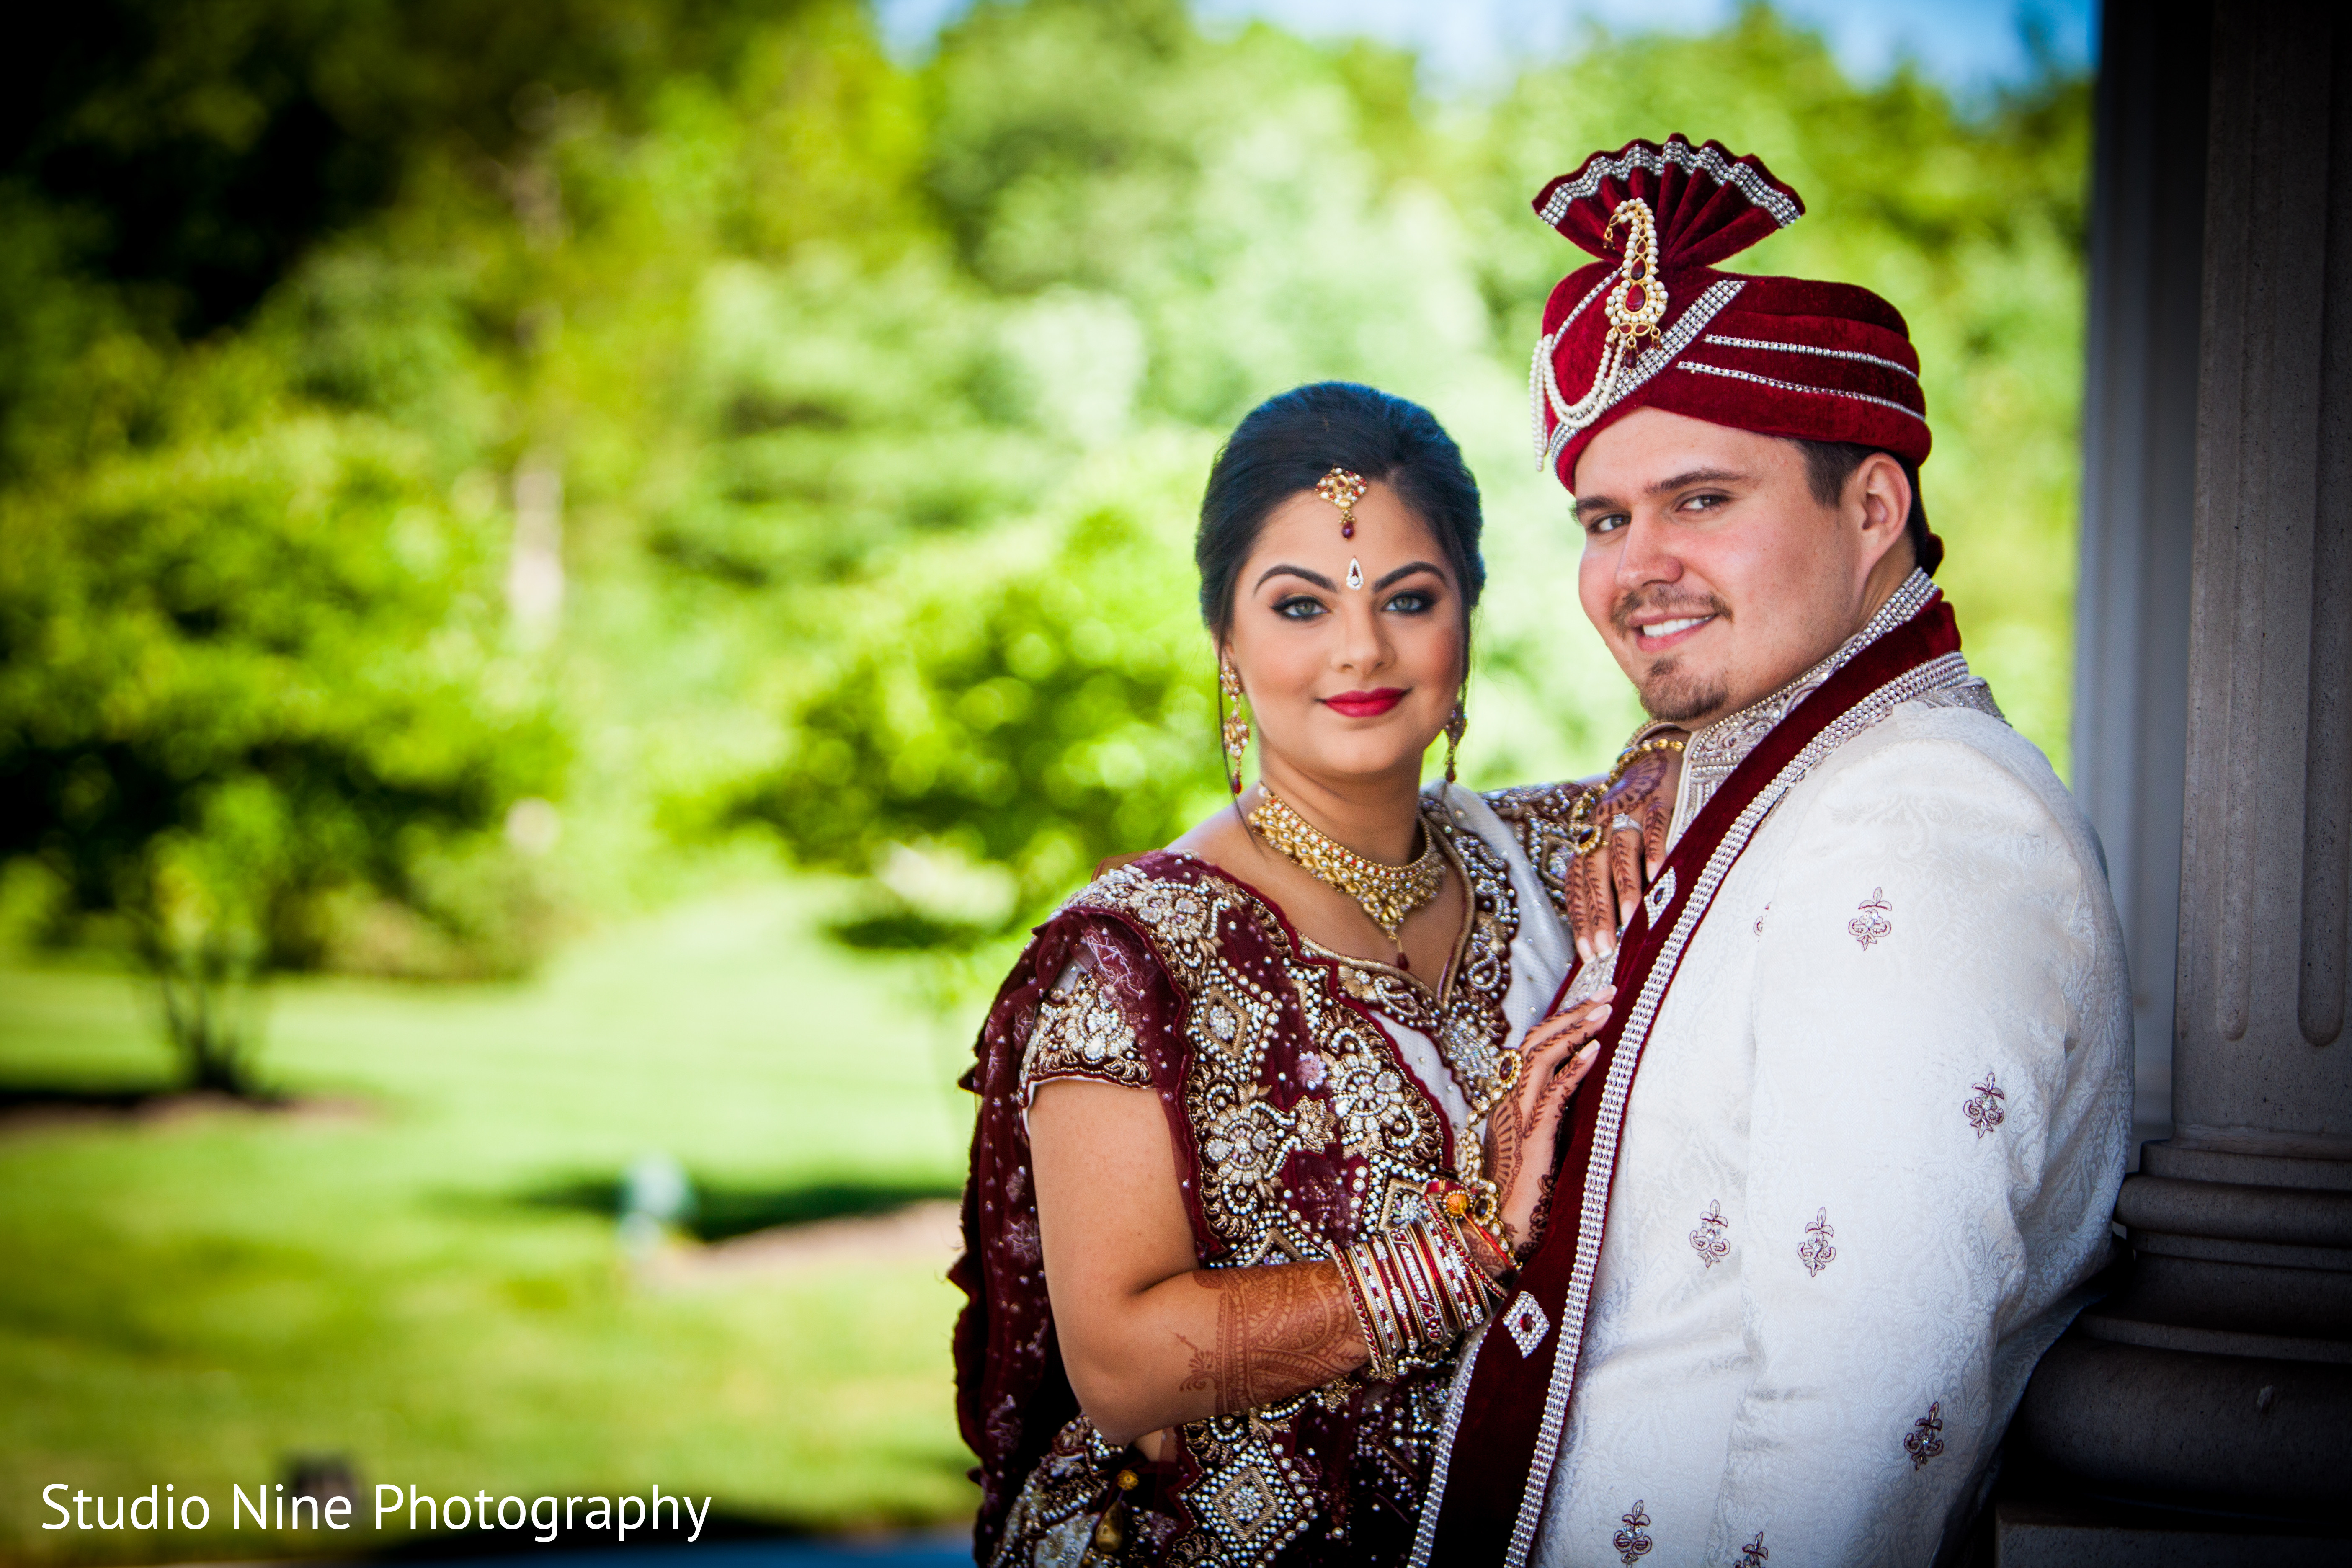 Outdoor Photography Wedding: Portraits In Somerset, NJ Indian Wedding By Studio Nine